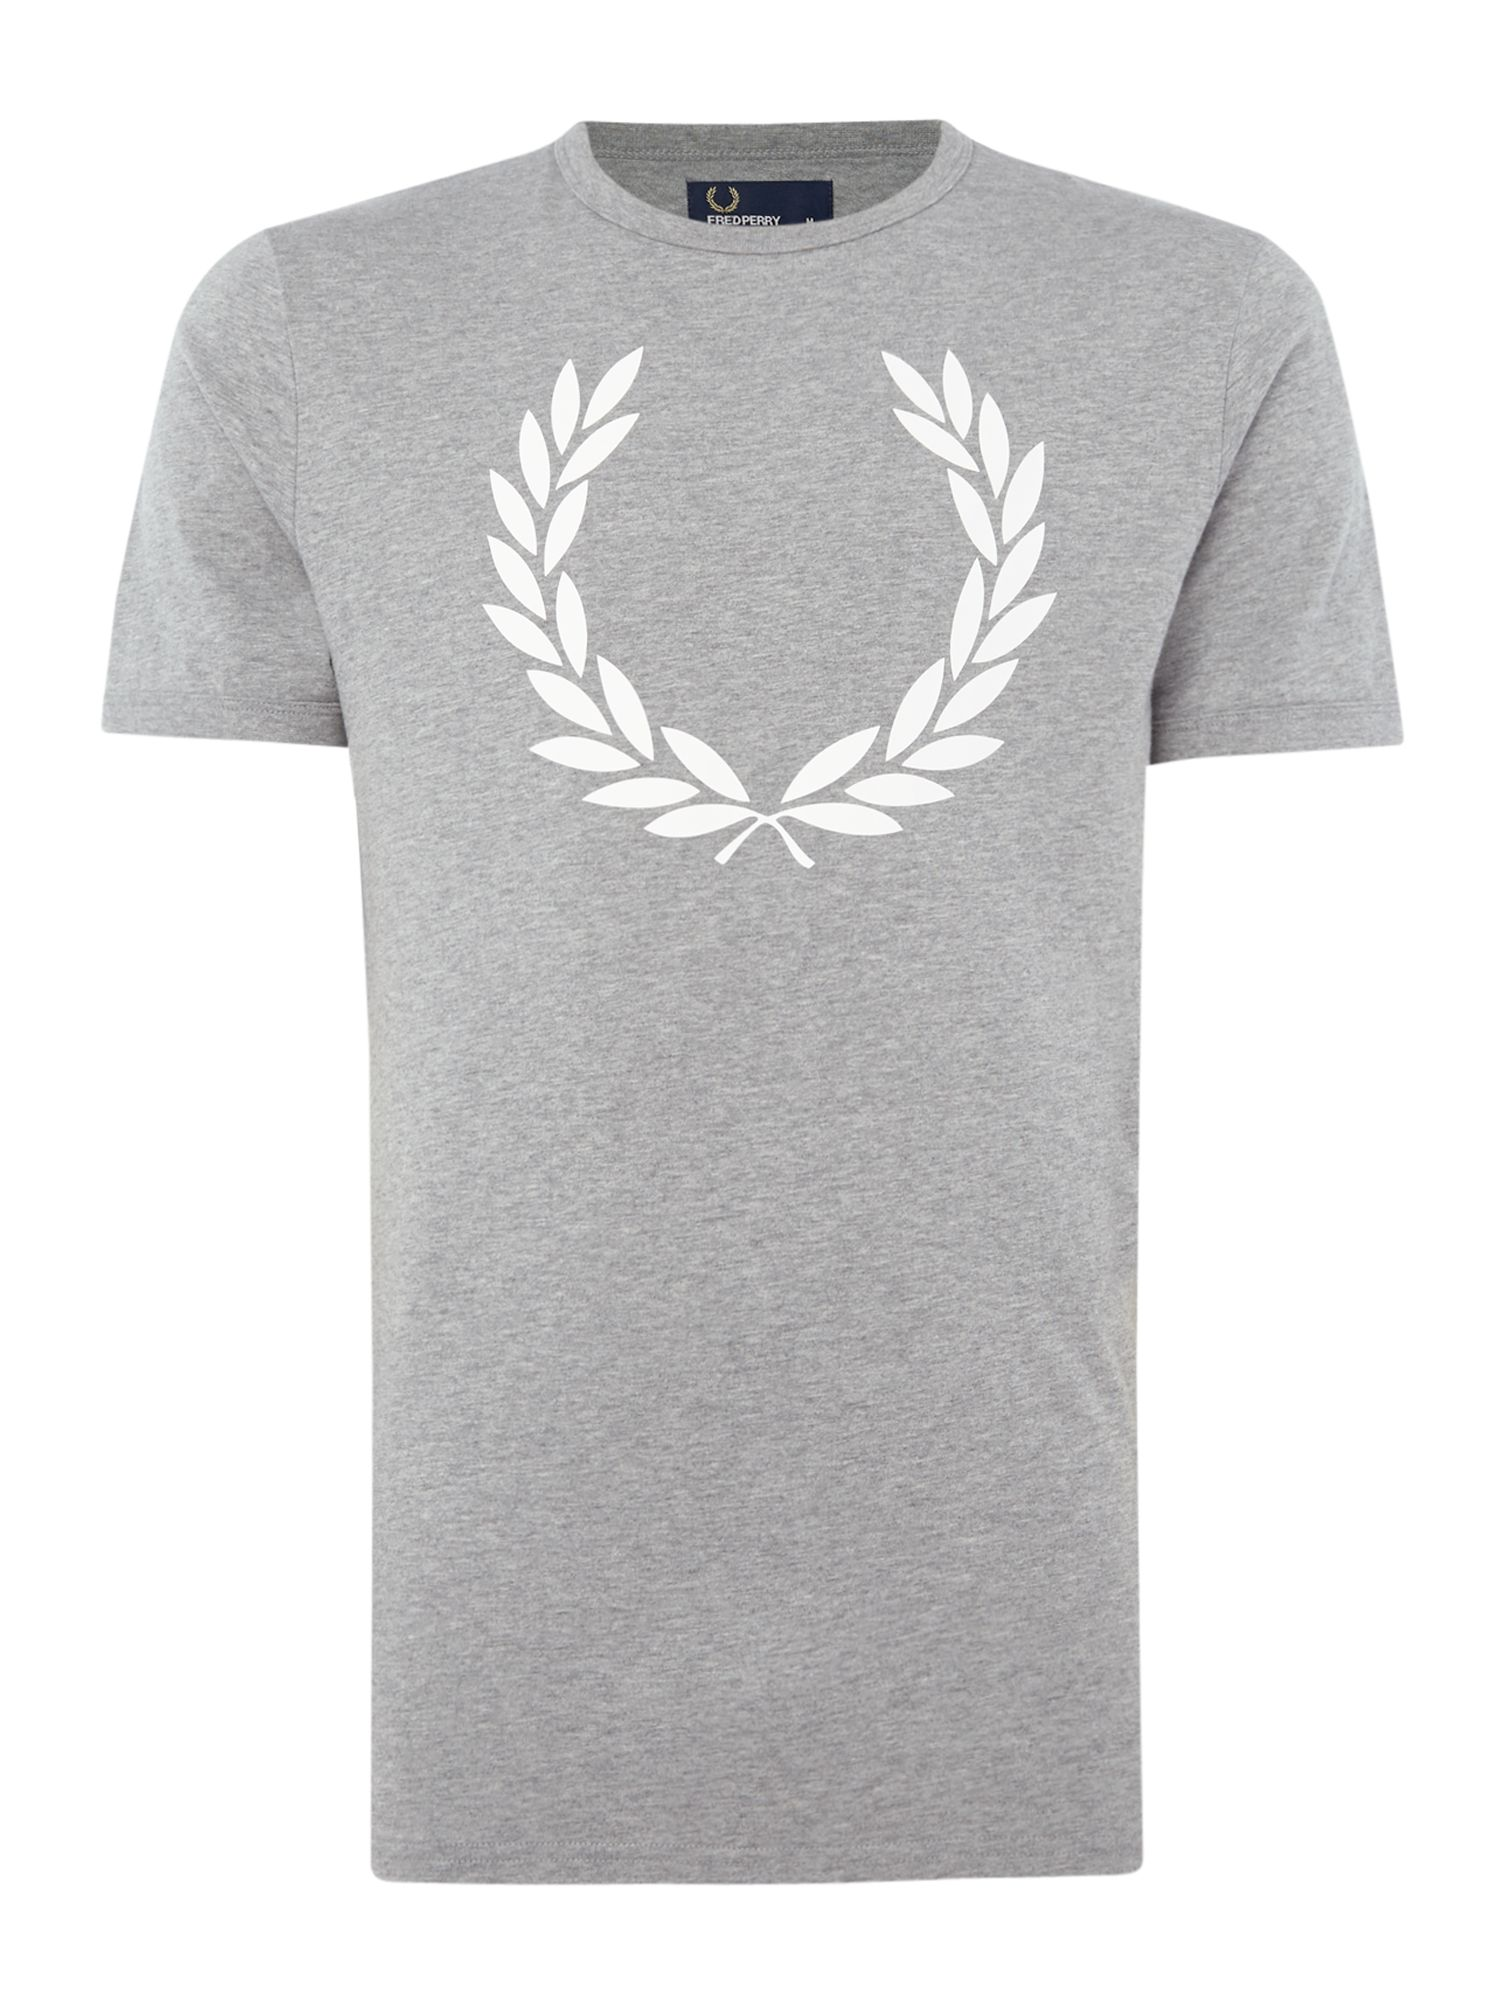 Men's Fred Perry Laurel wreath ringer short sleeve tshirt, Grey Marl